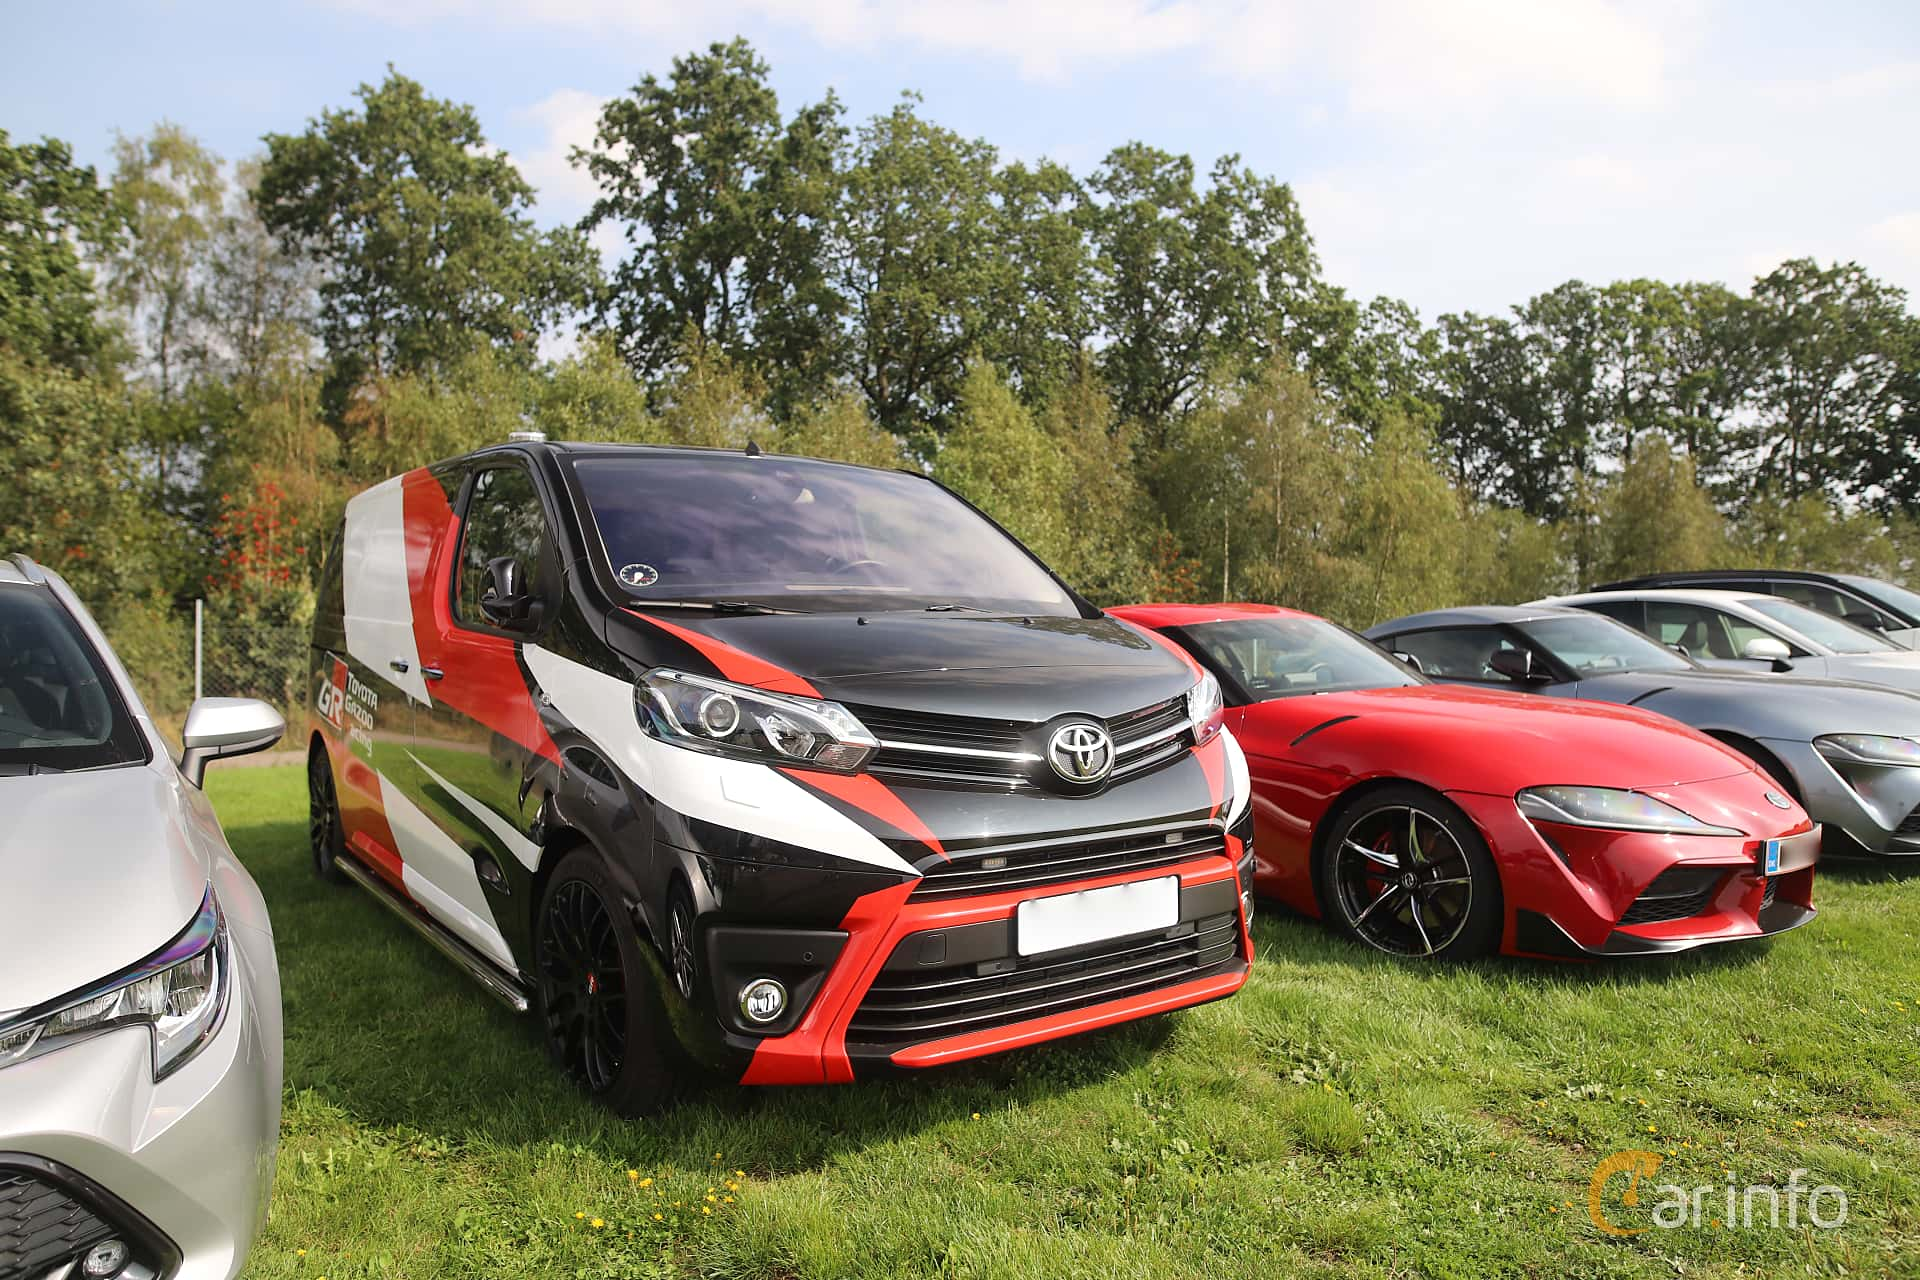 Toyota ProAce Panel Van 2019 at Autoropa Racing day Knutstorp 2019